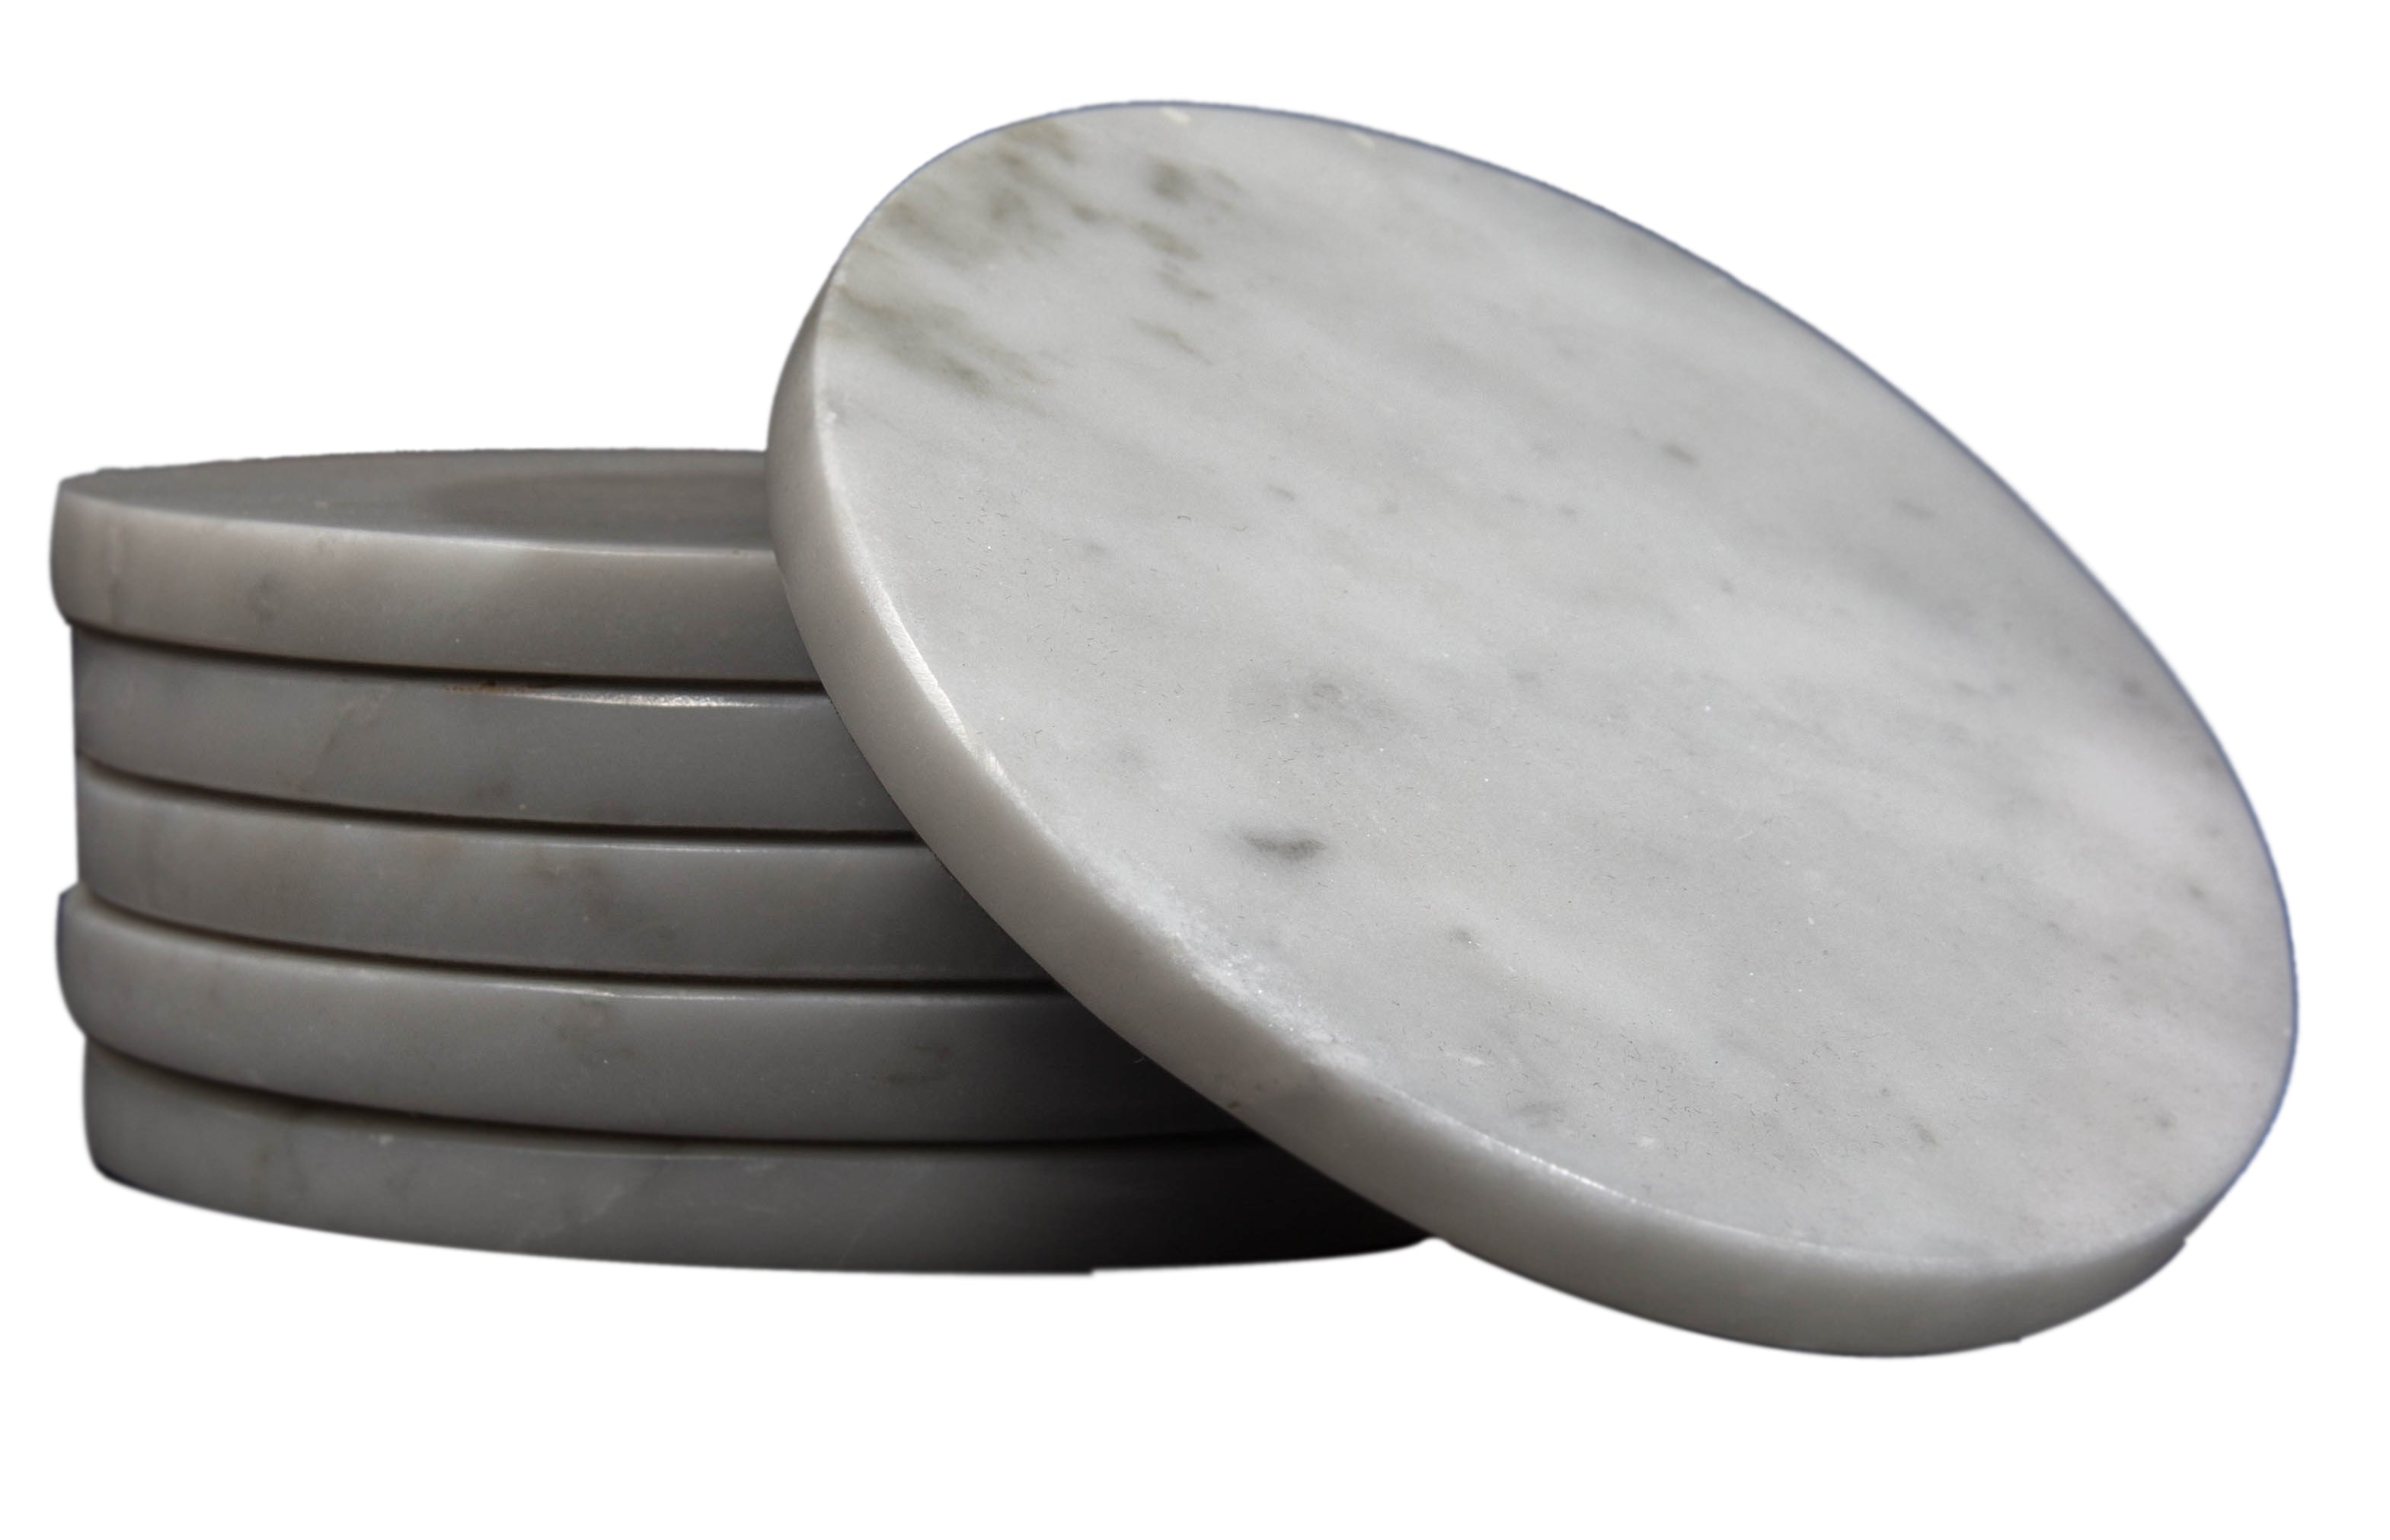 CraftsOfEgypt Set of 6 - Grey Marble Stone Coasters  – Polished Coasters  – 3.5 Inches (9 cm) in Diameter  – Protection from Drink Rings